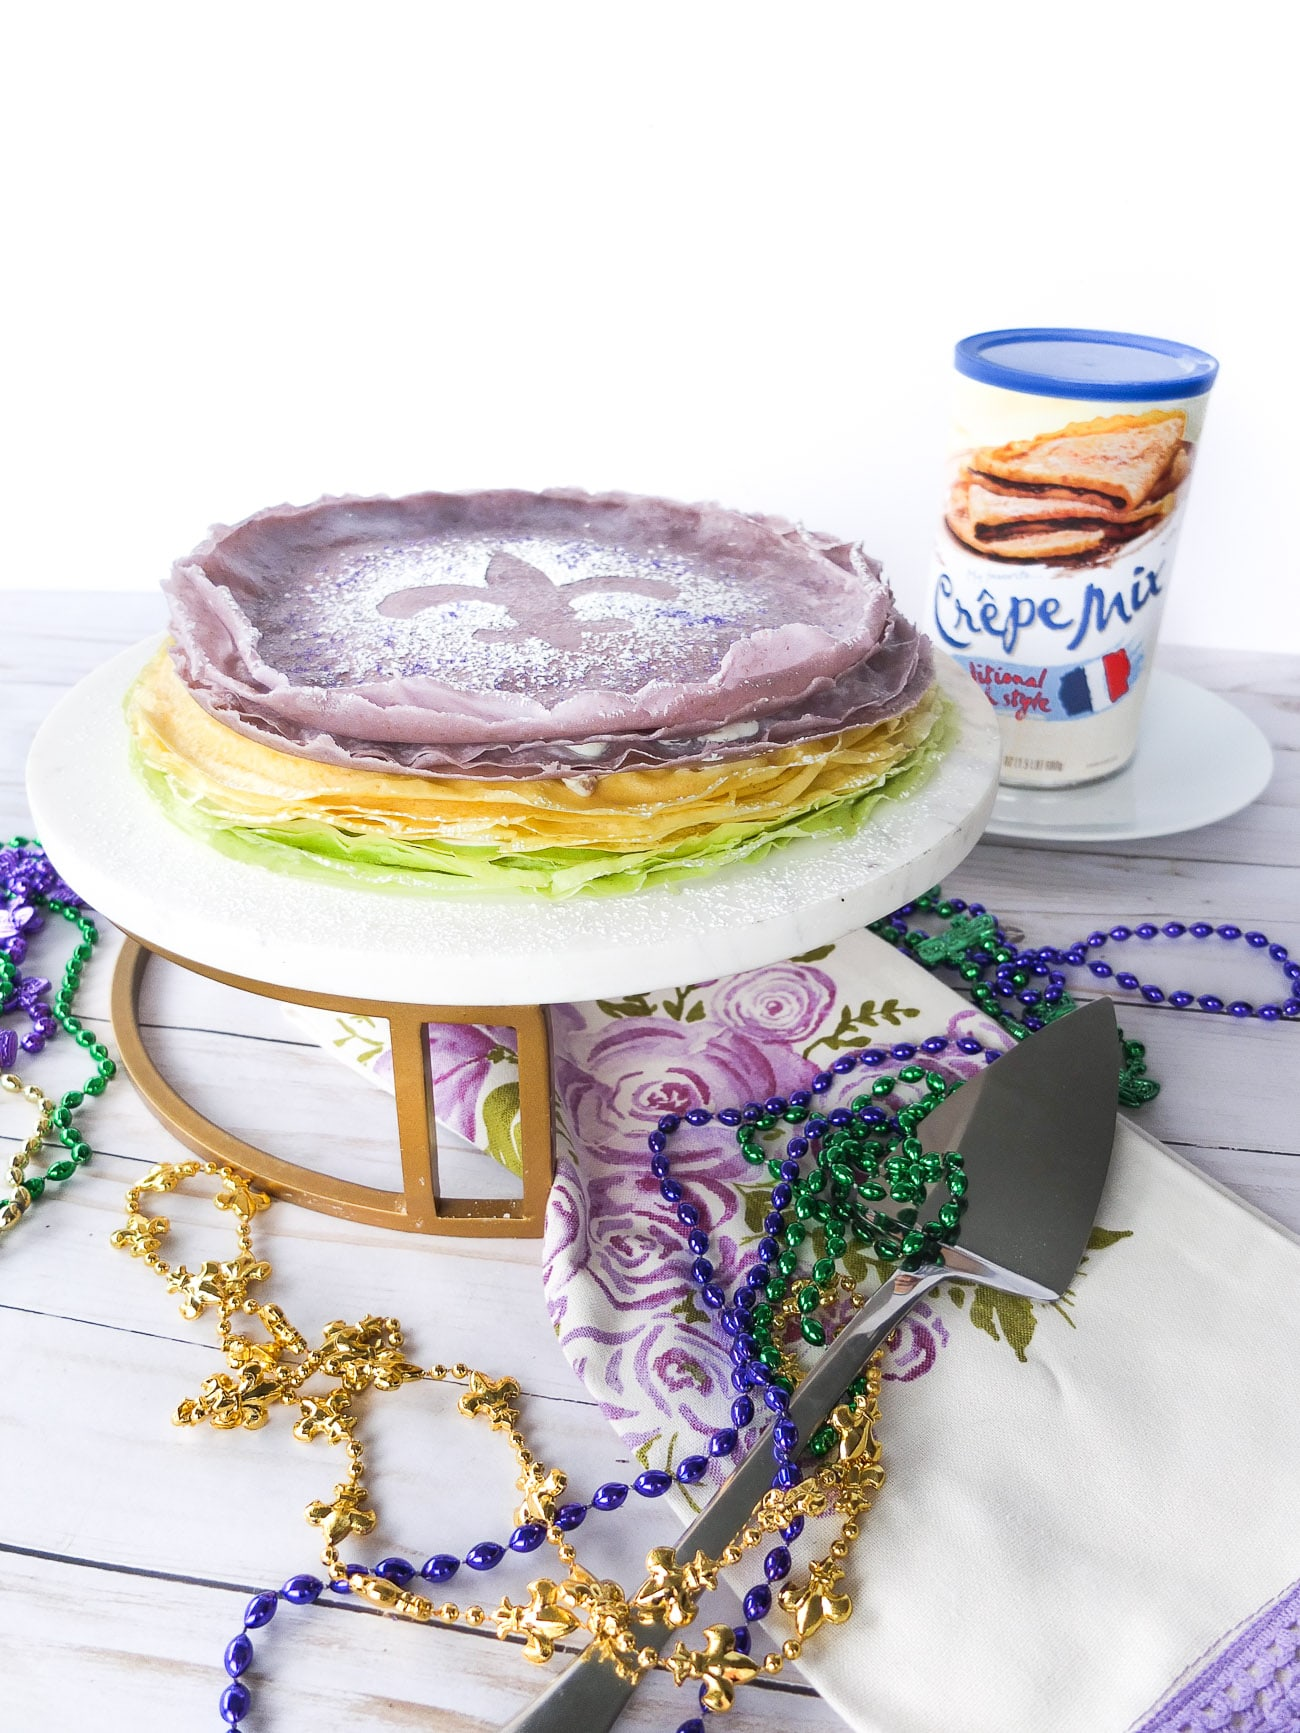 A twist on a Mardi Gras recipe classic takes layers of crepes and praline cream cheese frosting to make a King Cake inspired Crepe Cake. This Crepe King Cake is perfect if your looking for a unique Mardi Gras food or need a dessert to entertain for a Mardi Gras party. #ad #mardigras #mardigrasfood #worldmarket @worldmarket #crepe #crepecake #dessert